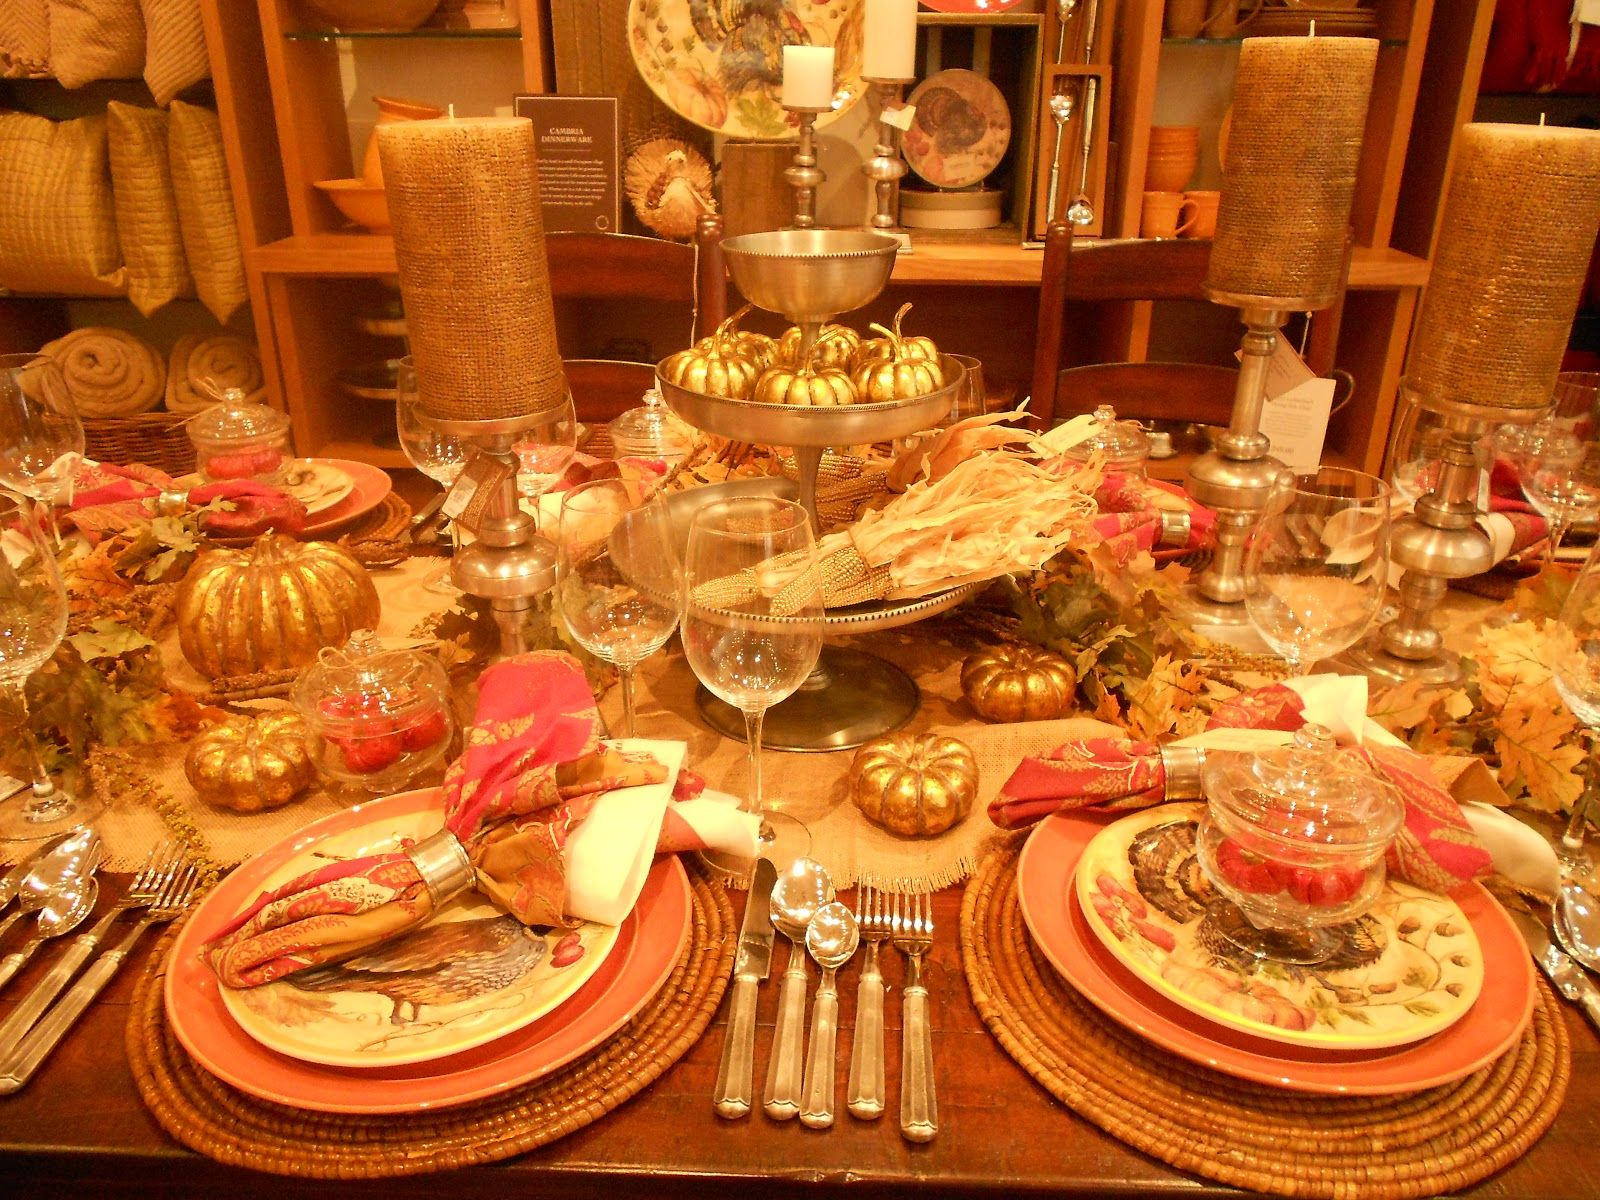 Thanksgiving table decorations images high definition Thanksgiving table